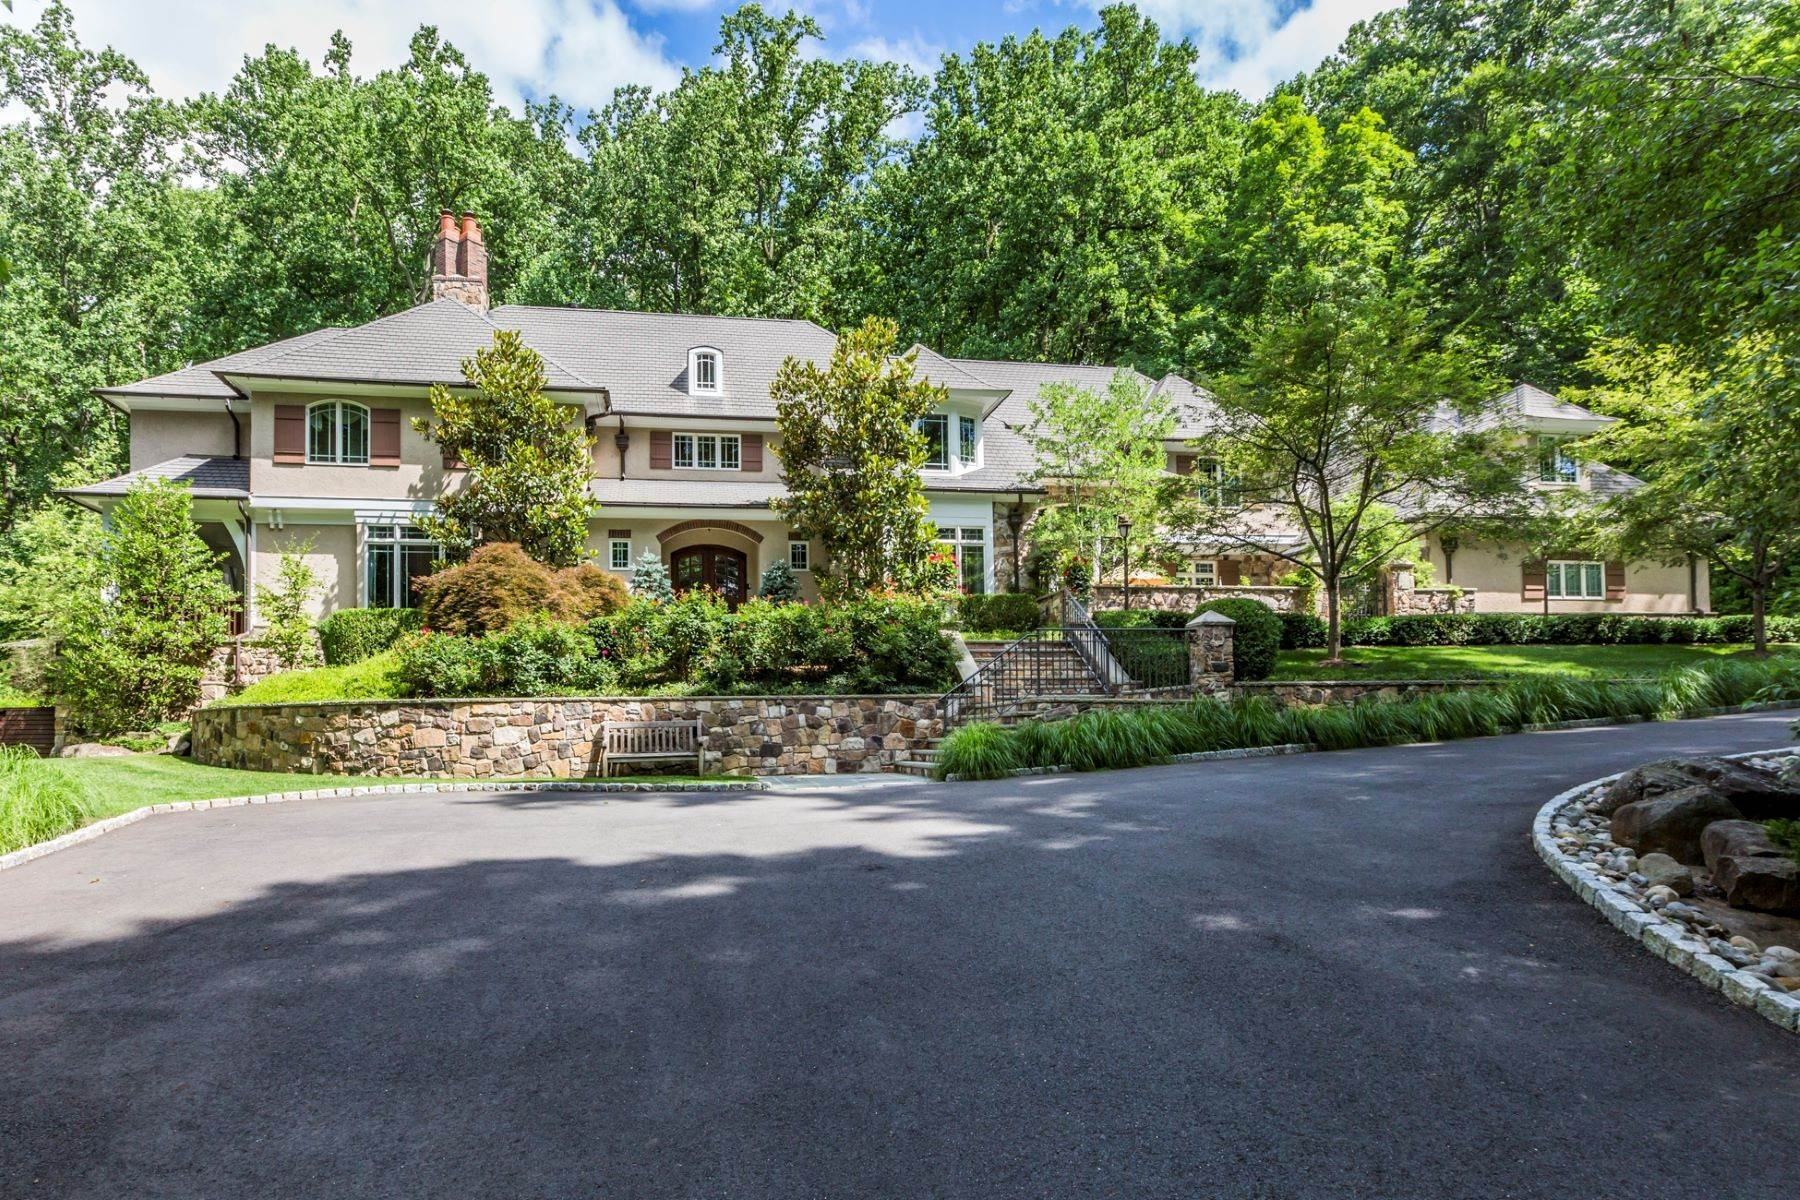 Single Family Homes for Sale at Spectacular Sanctuary 44 Cradle Rock Road Princeton, New Jersey 08540 United States